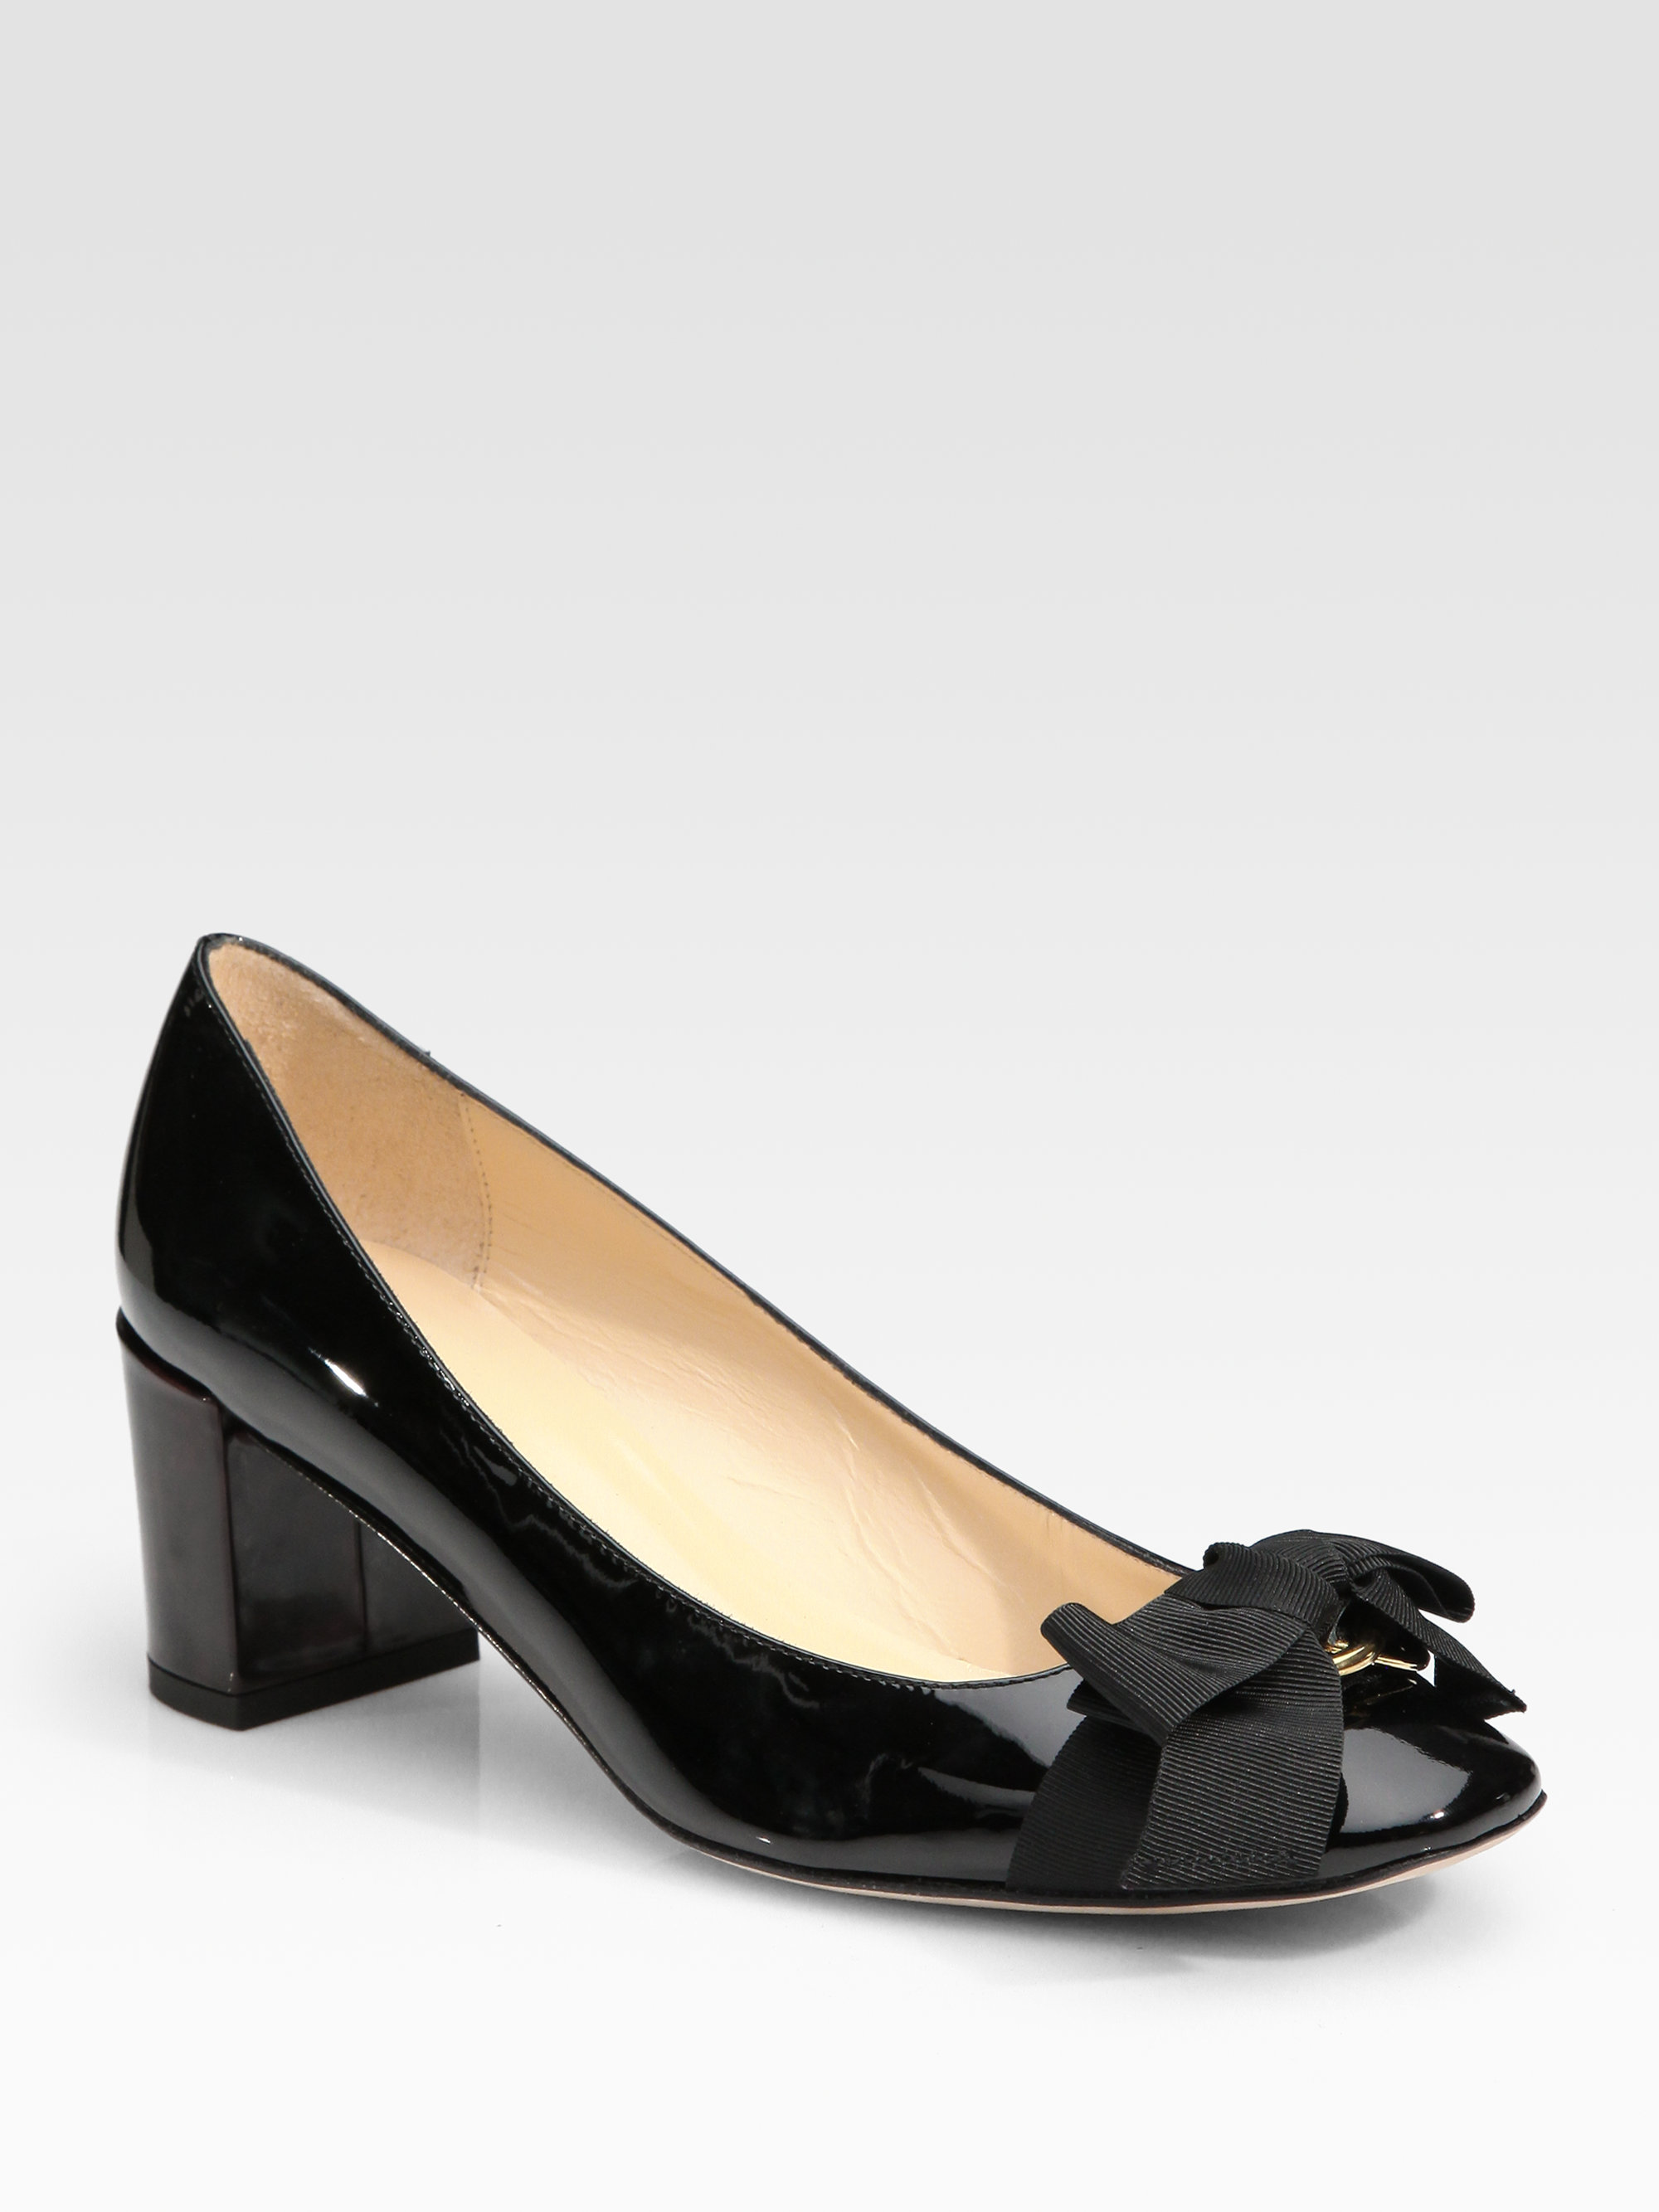 1a6ca55c5005 Lyst - Kate Spade Dale Patent Leather Bow Pumps in Black